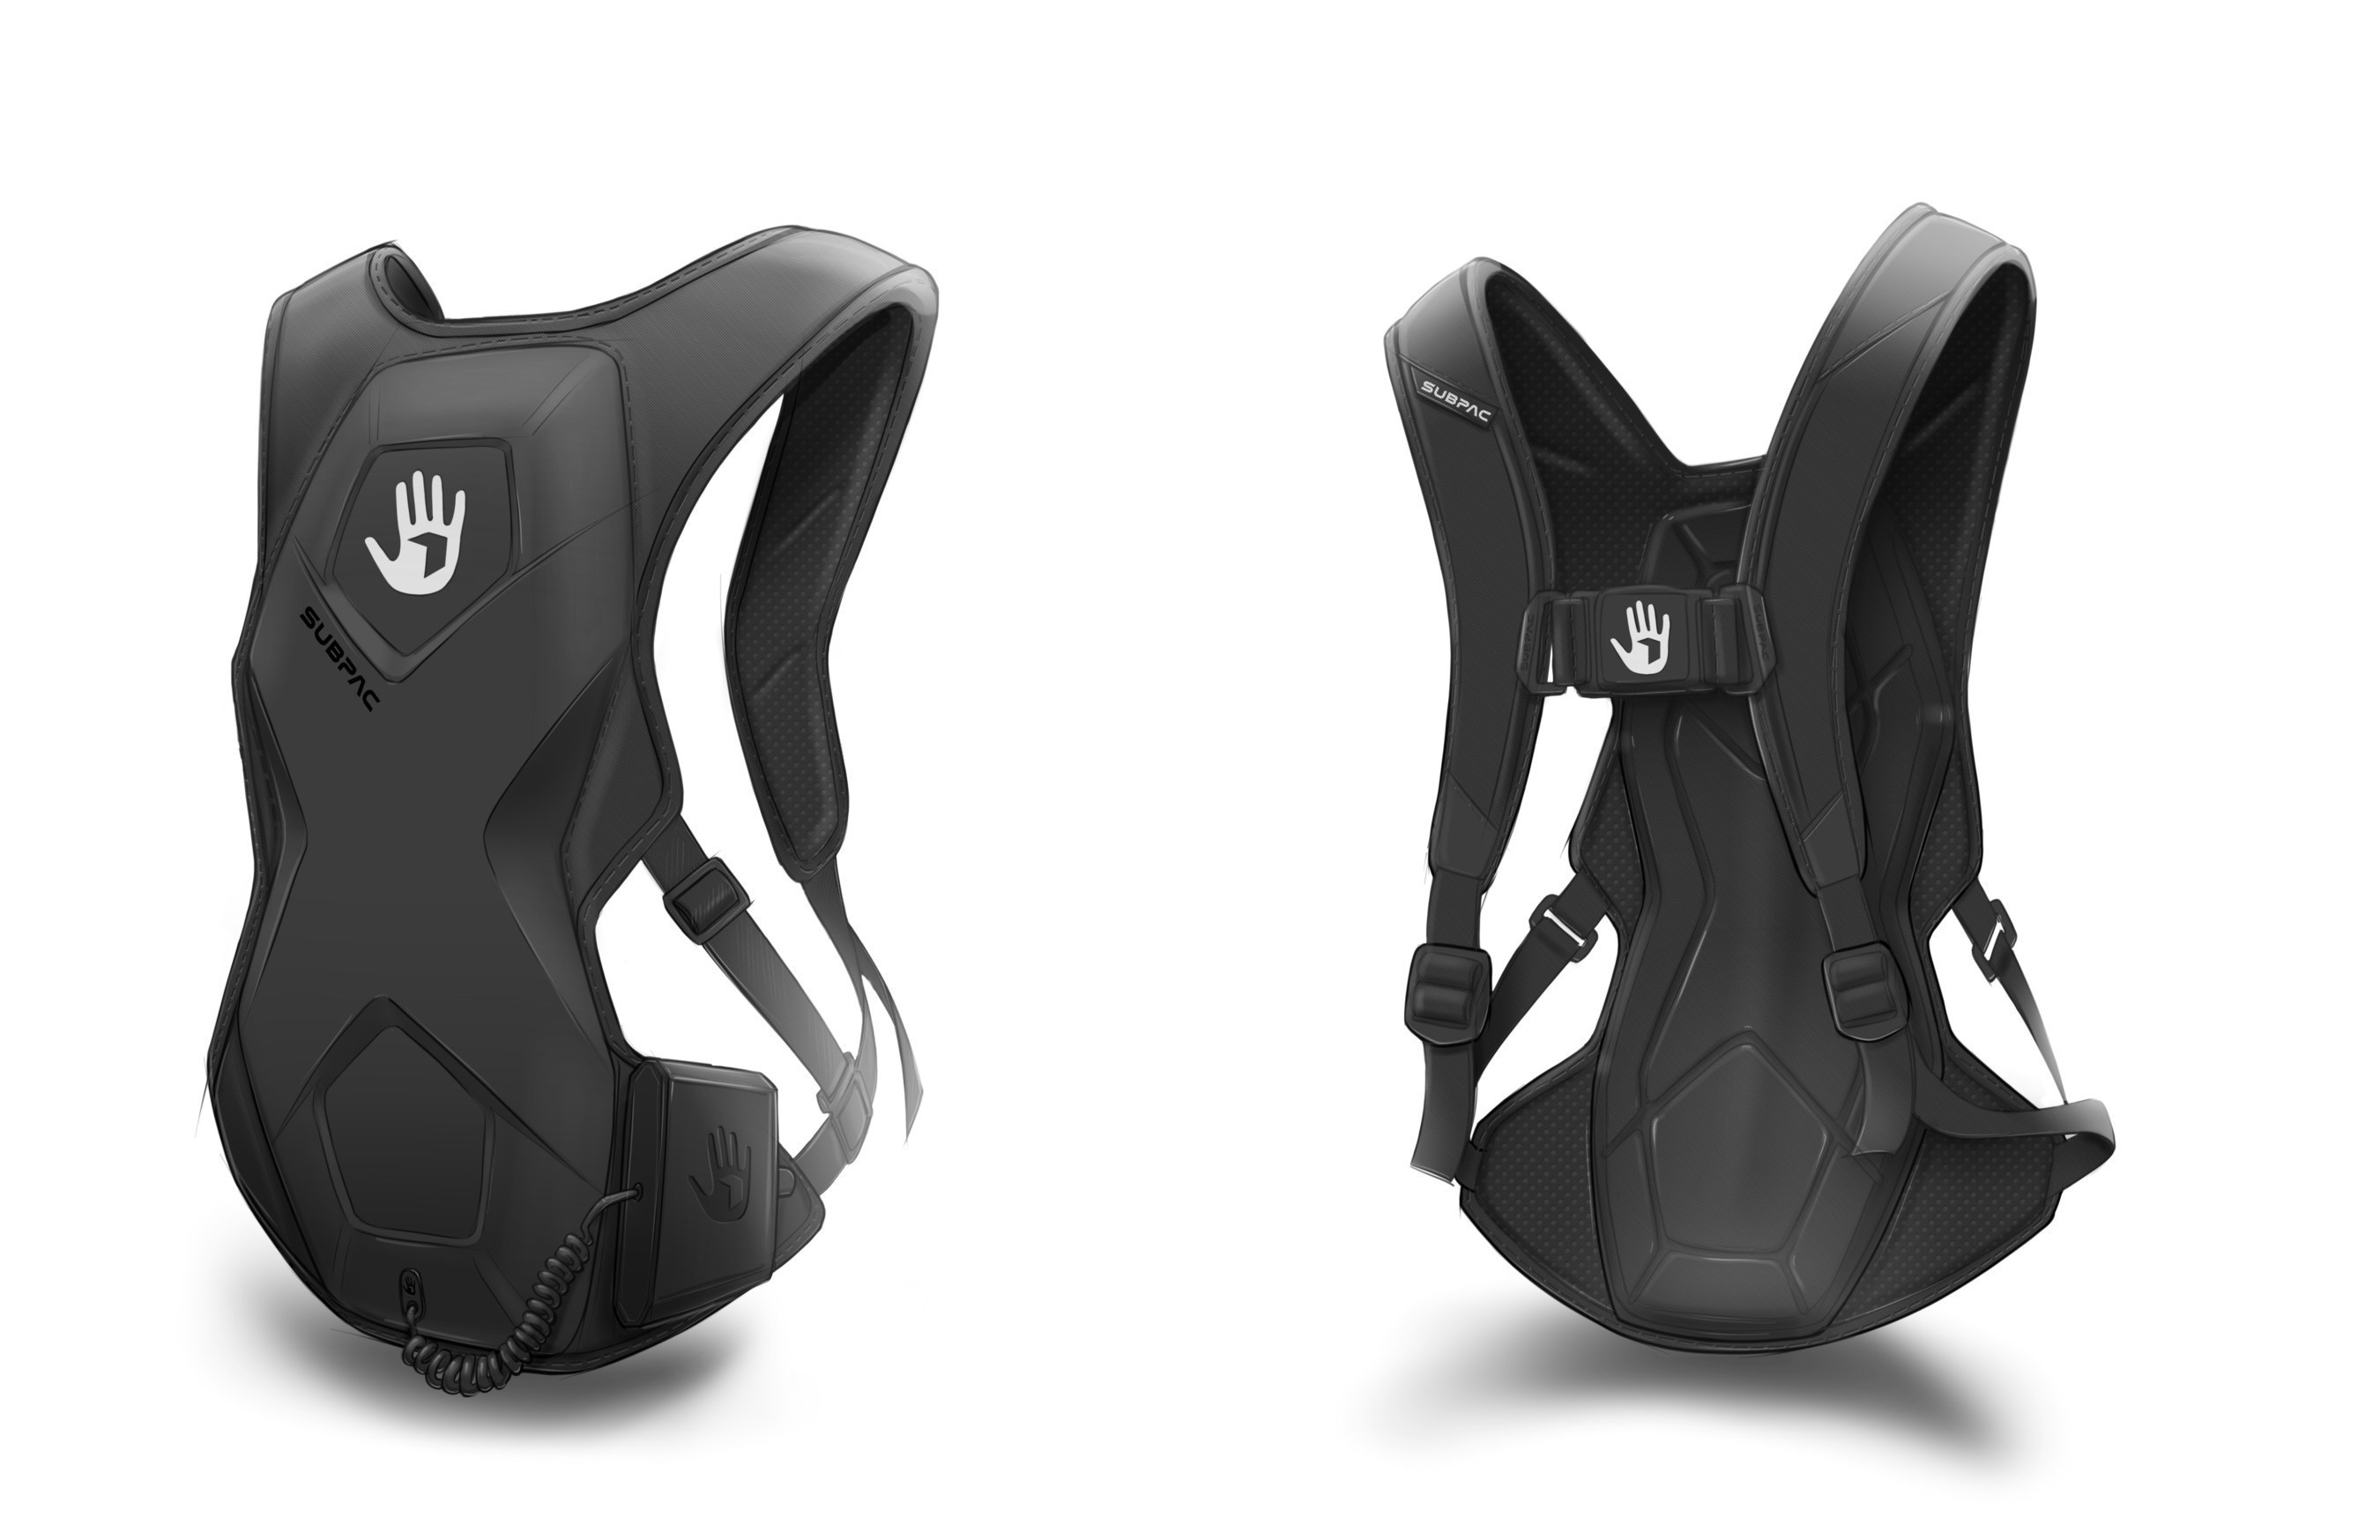 New SubPac S2 and M2 Personal Tactile Audio Systems Deliver High Fidelity Audio to The Body, Providing A Whole New Level of Immersion, Engagement and Emotion to Your Entertainment Experience.